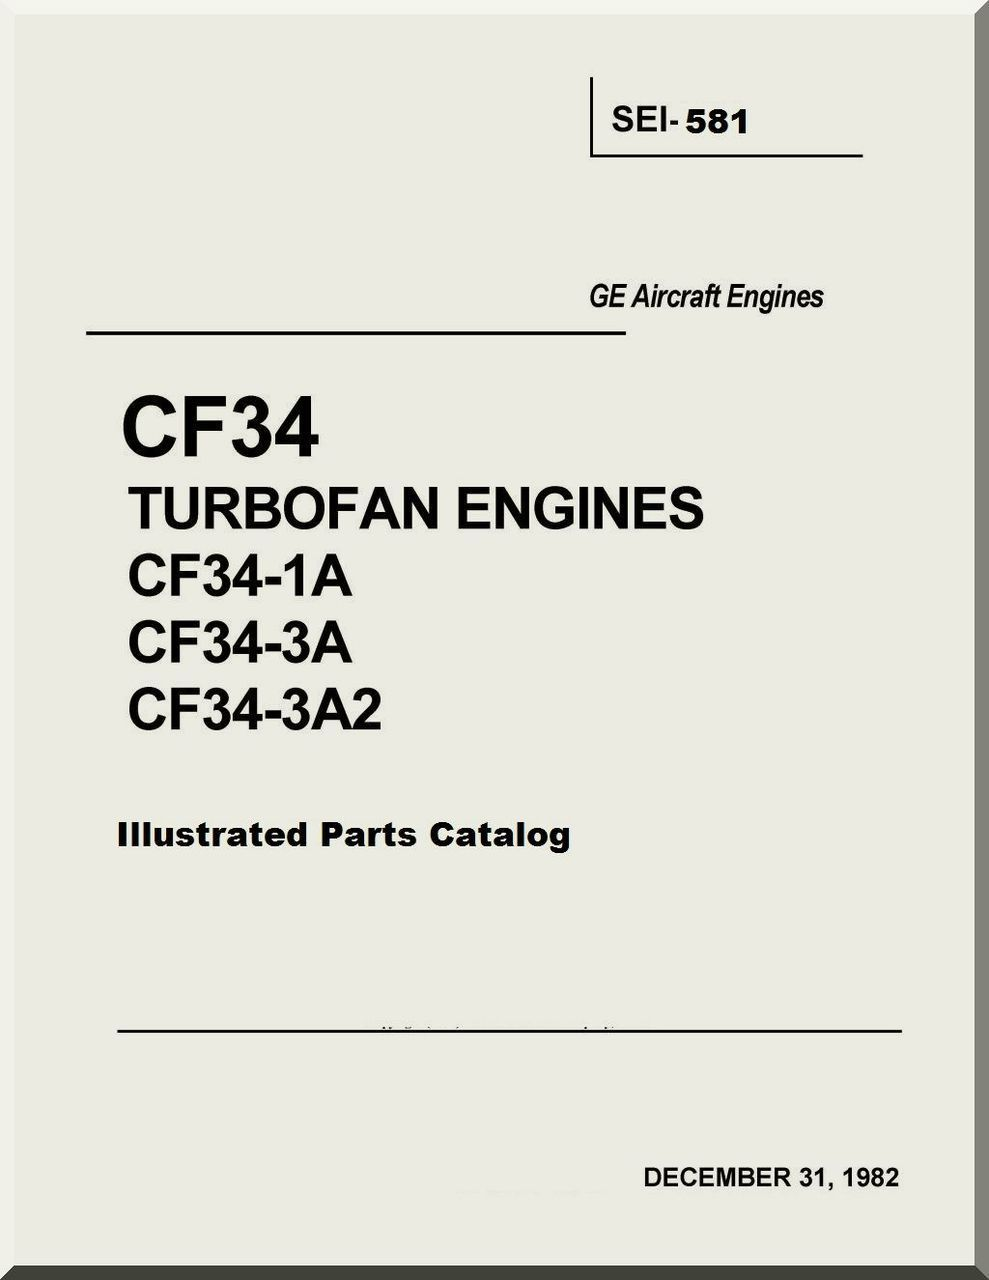 small resolution of  illustrated parts catalog manual sei 581 aircraft reports aircraft manuals aircraft helicopter engines propellers blueprints publications